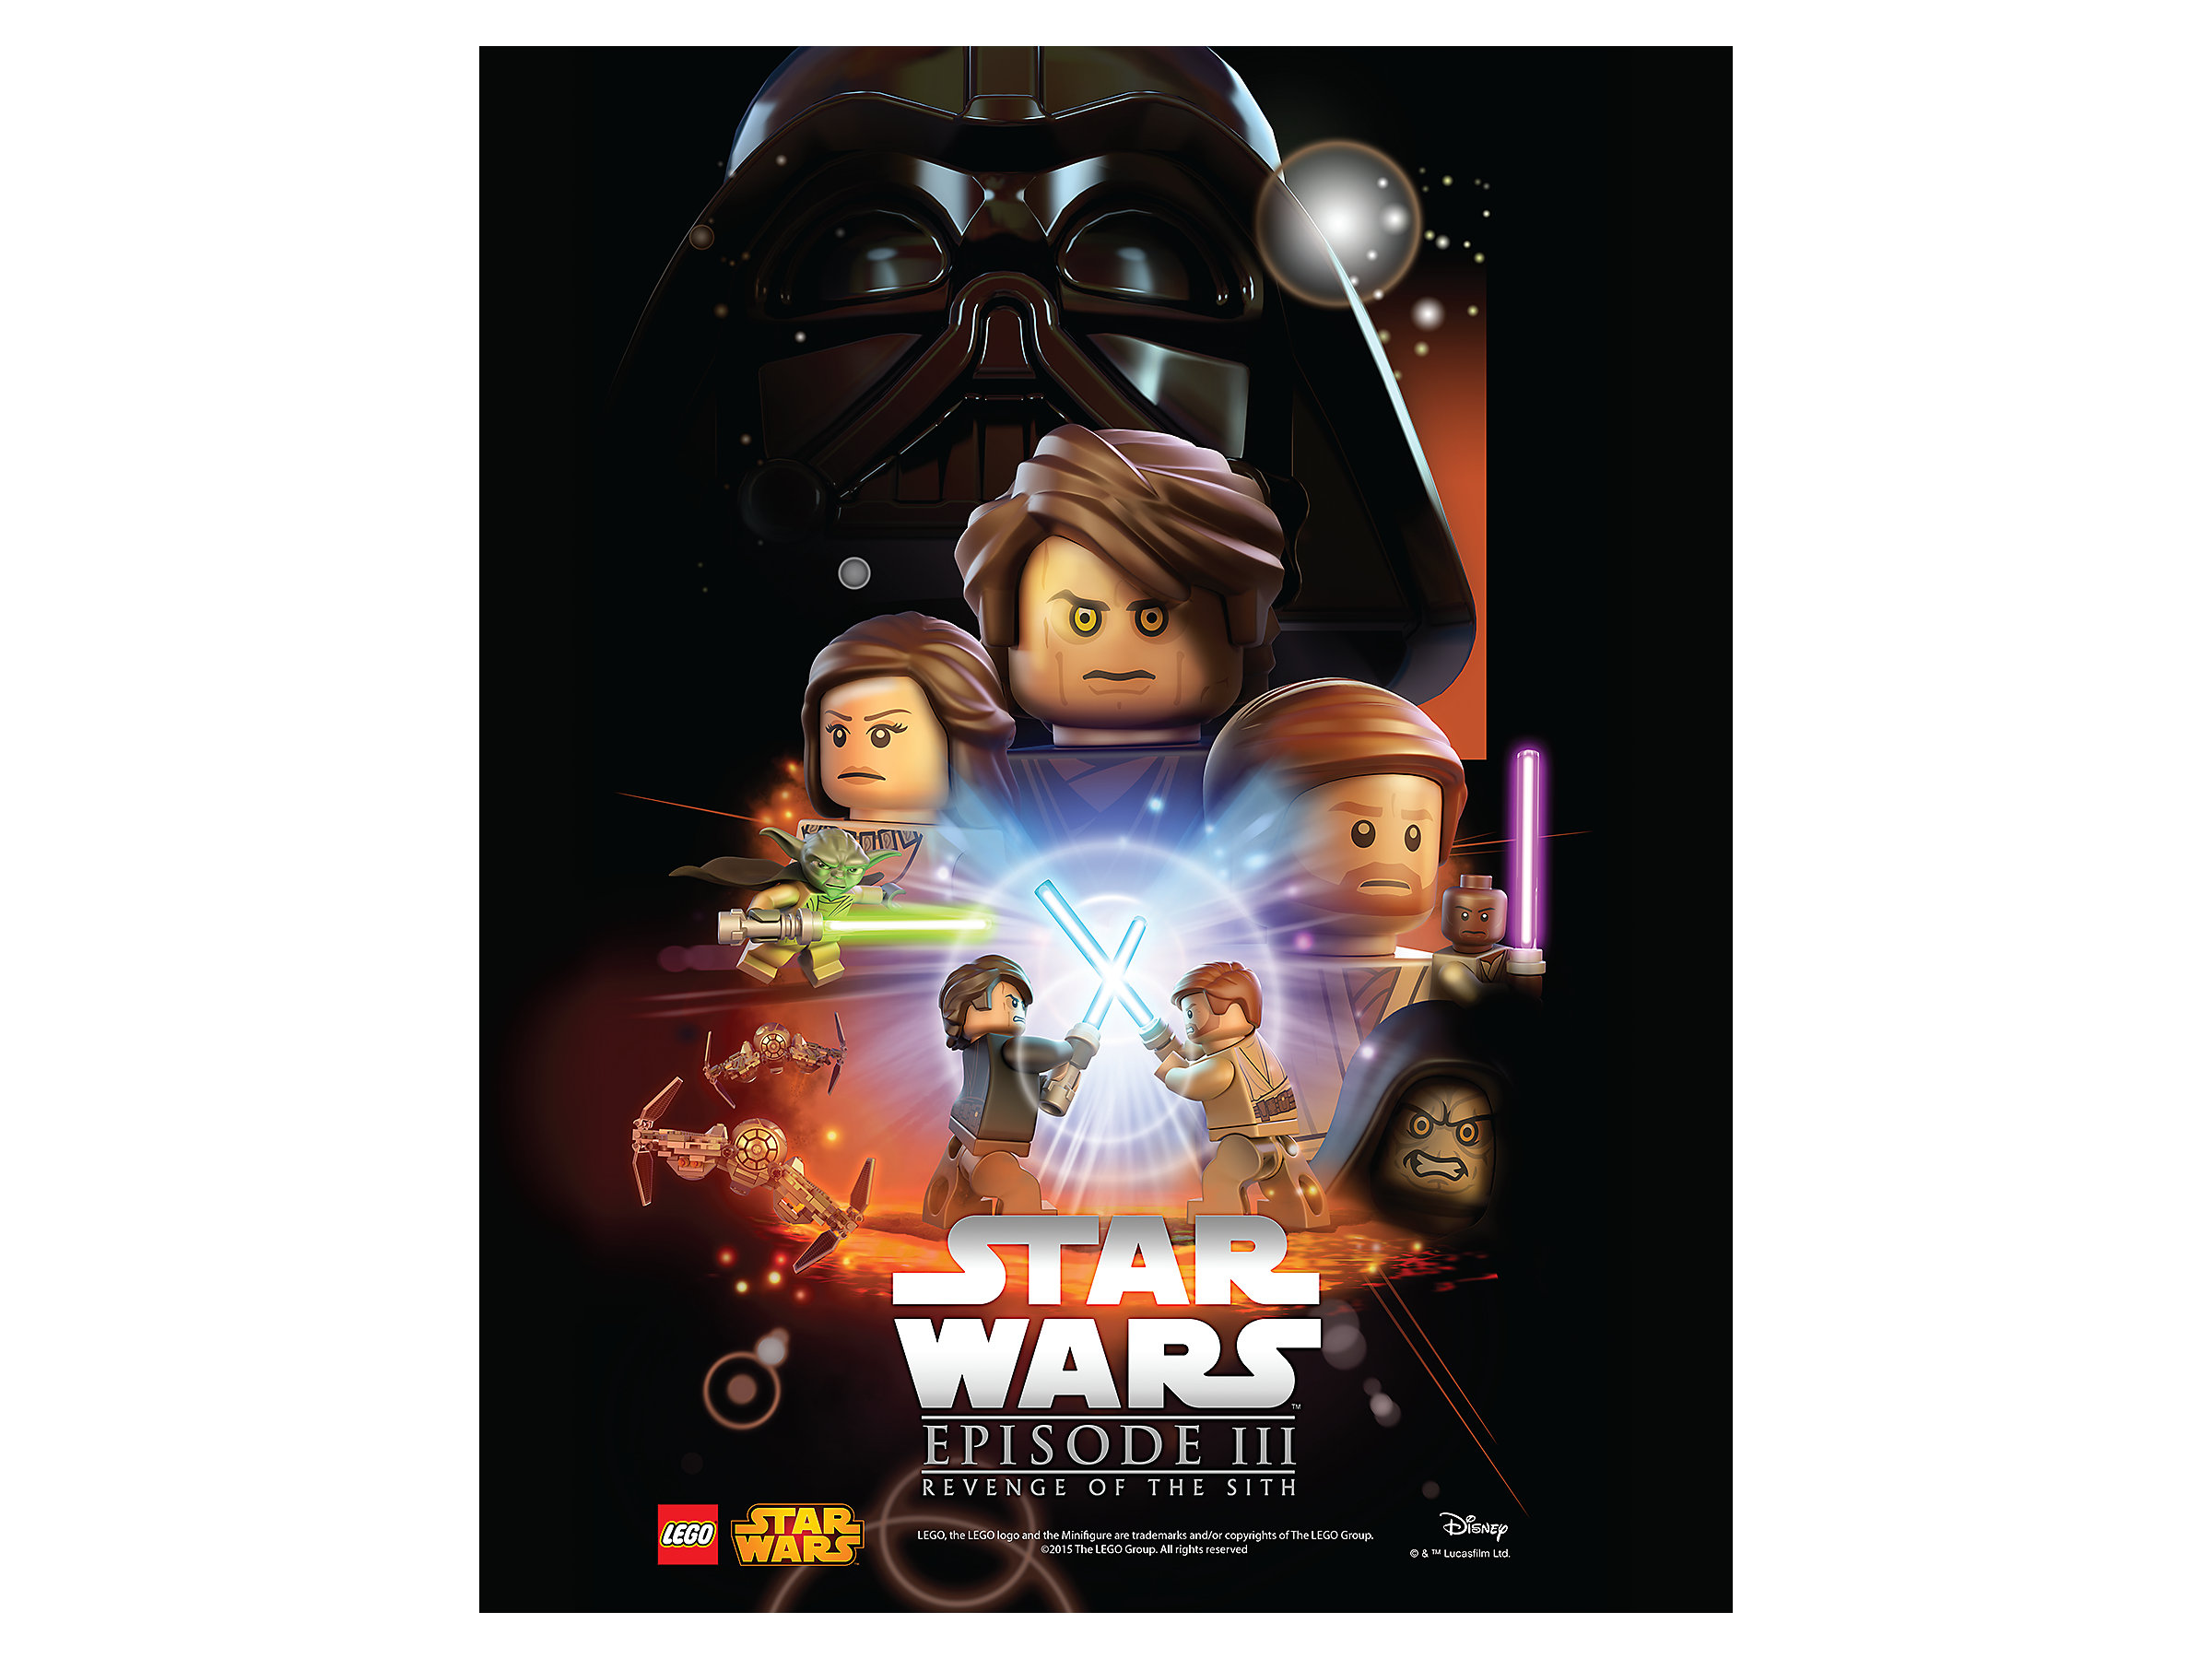 Lego Movies Lego Star Wars Episode Iii Revenge Of The Sith 5004746